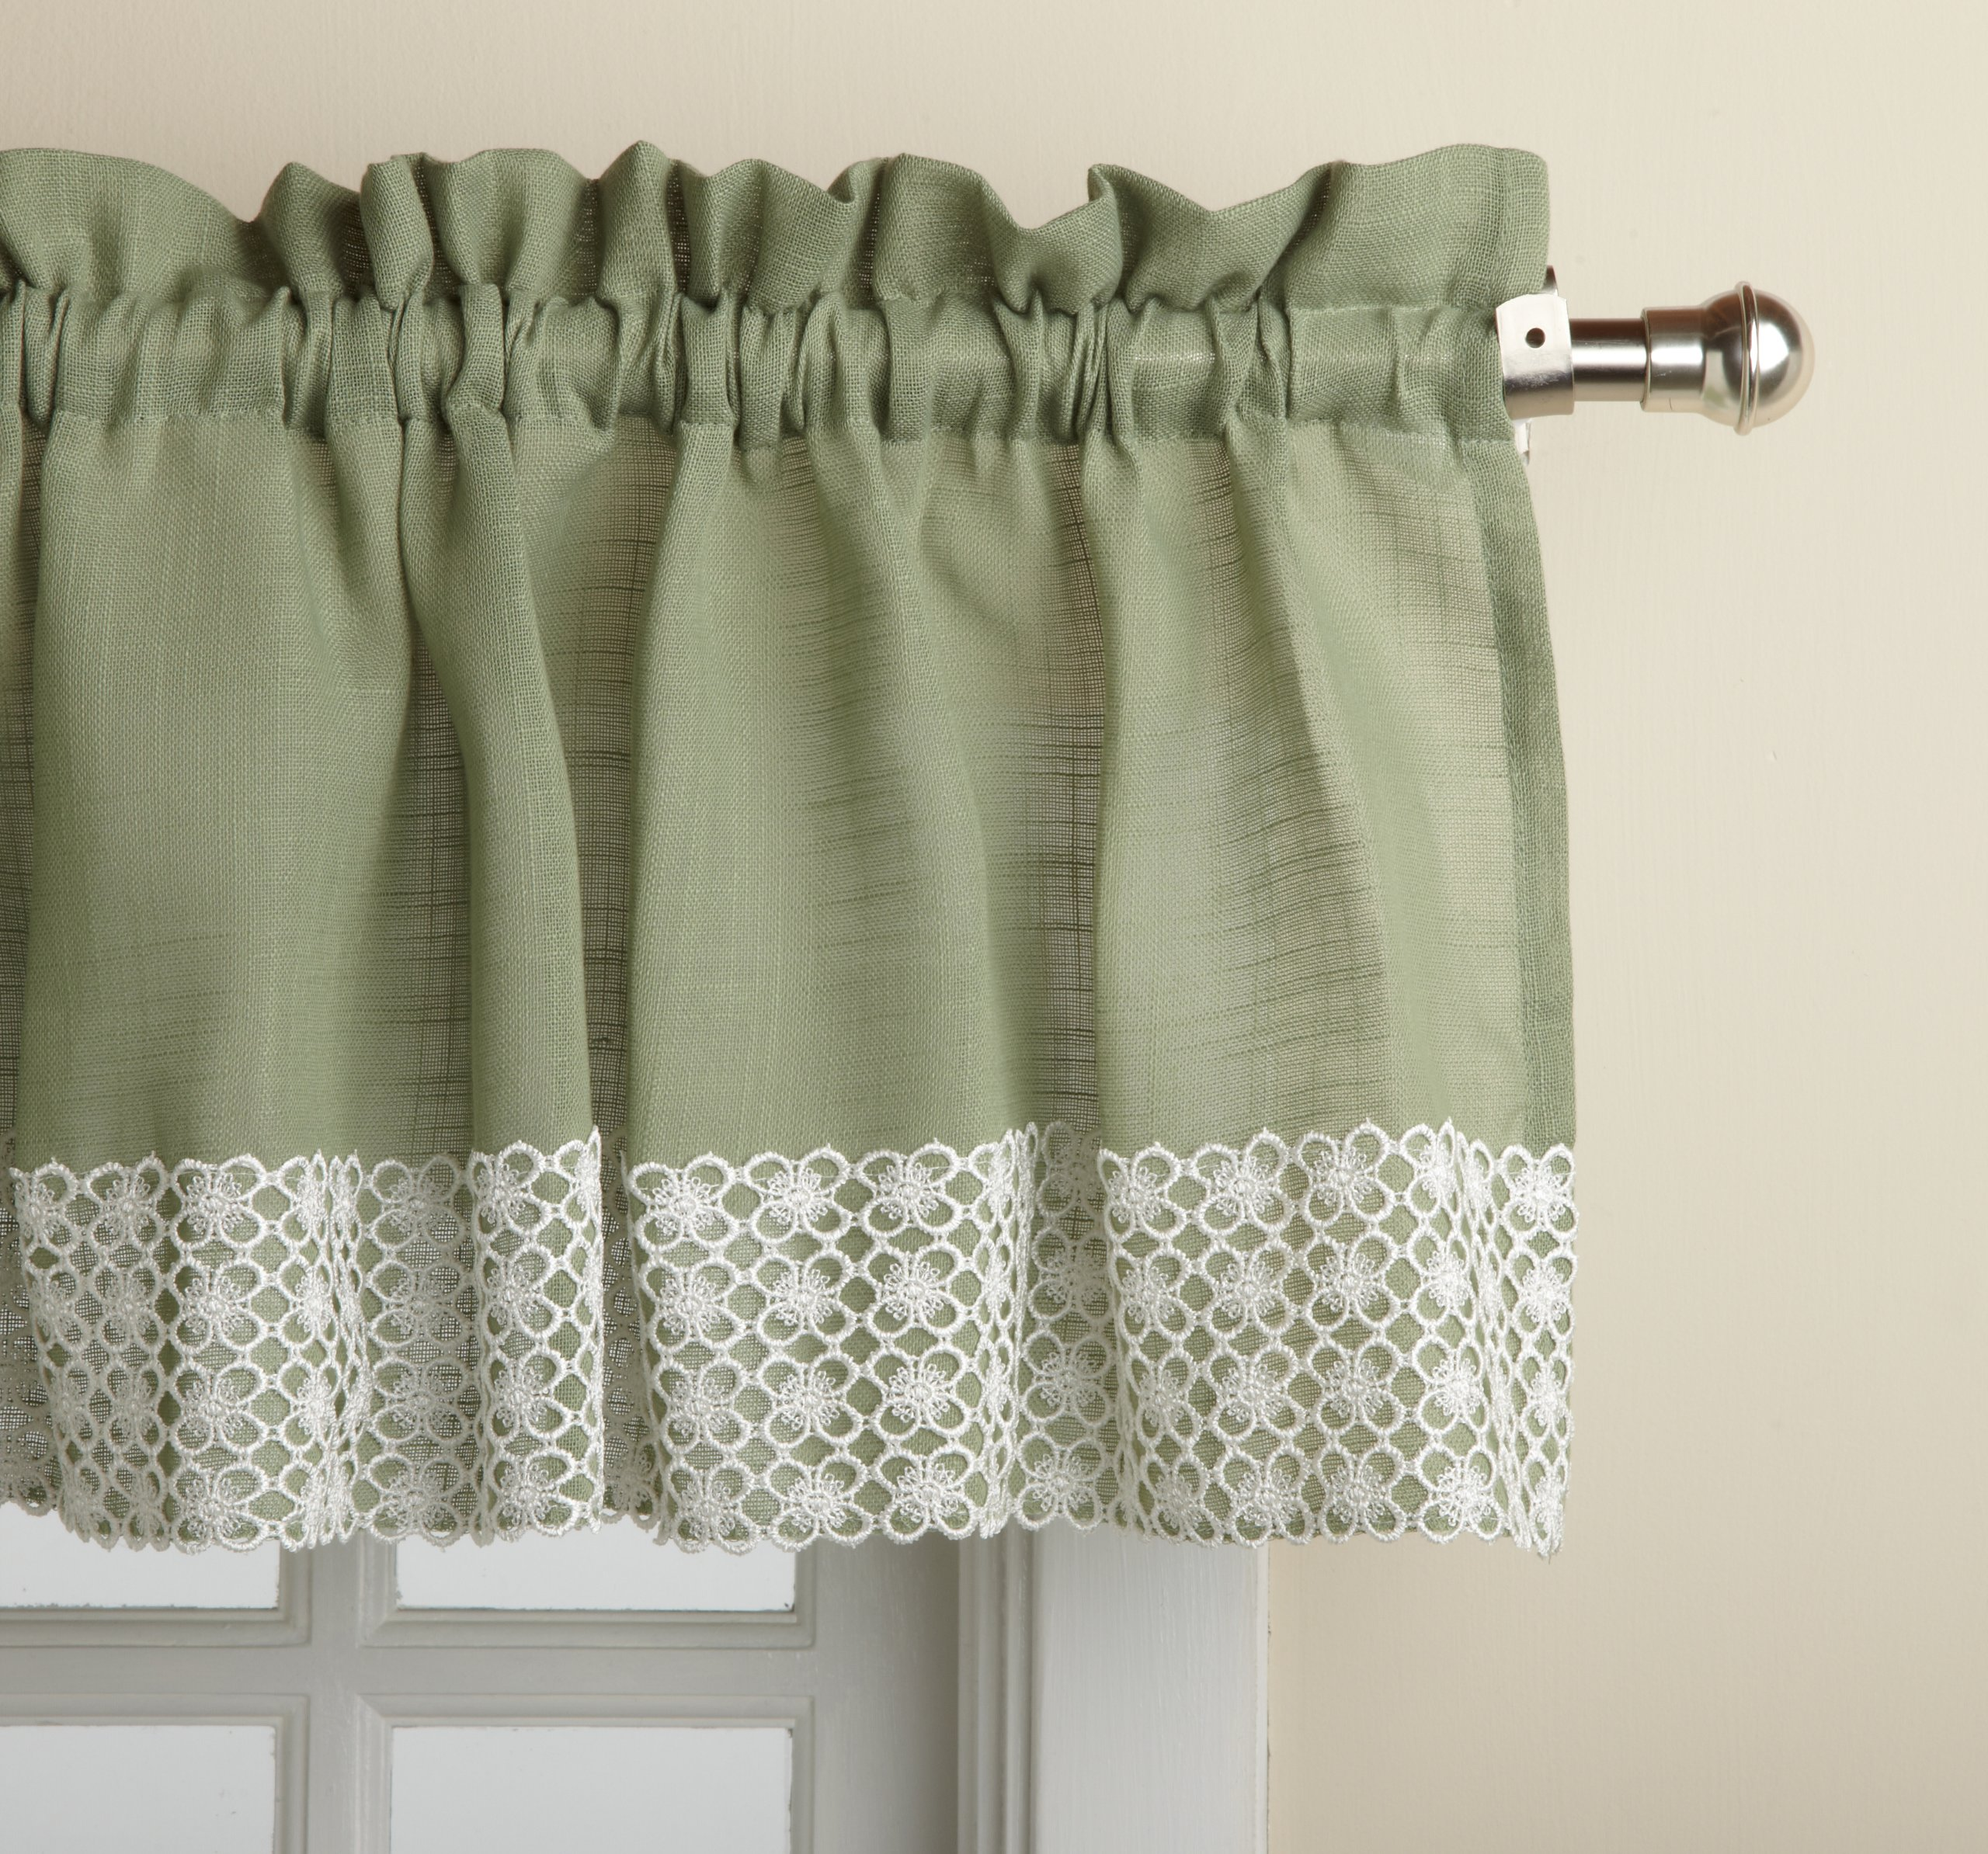 thermavoile insulated wide panel lined style sheer curtain rhapsody top grommet european semi valance voile